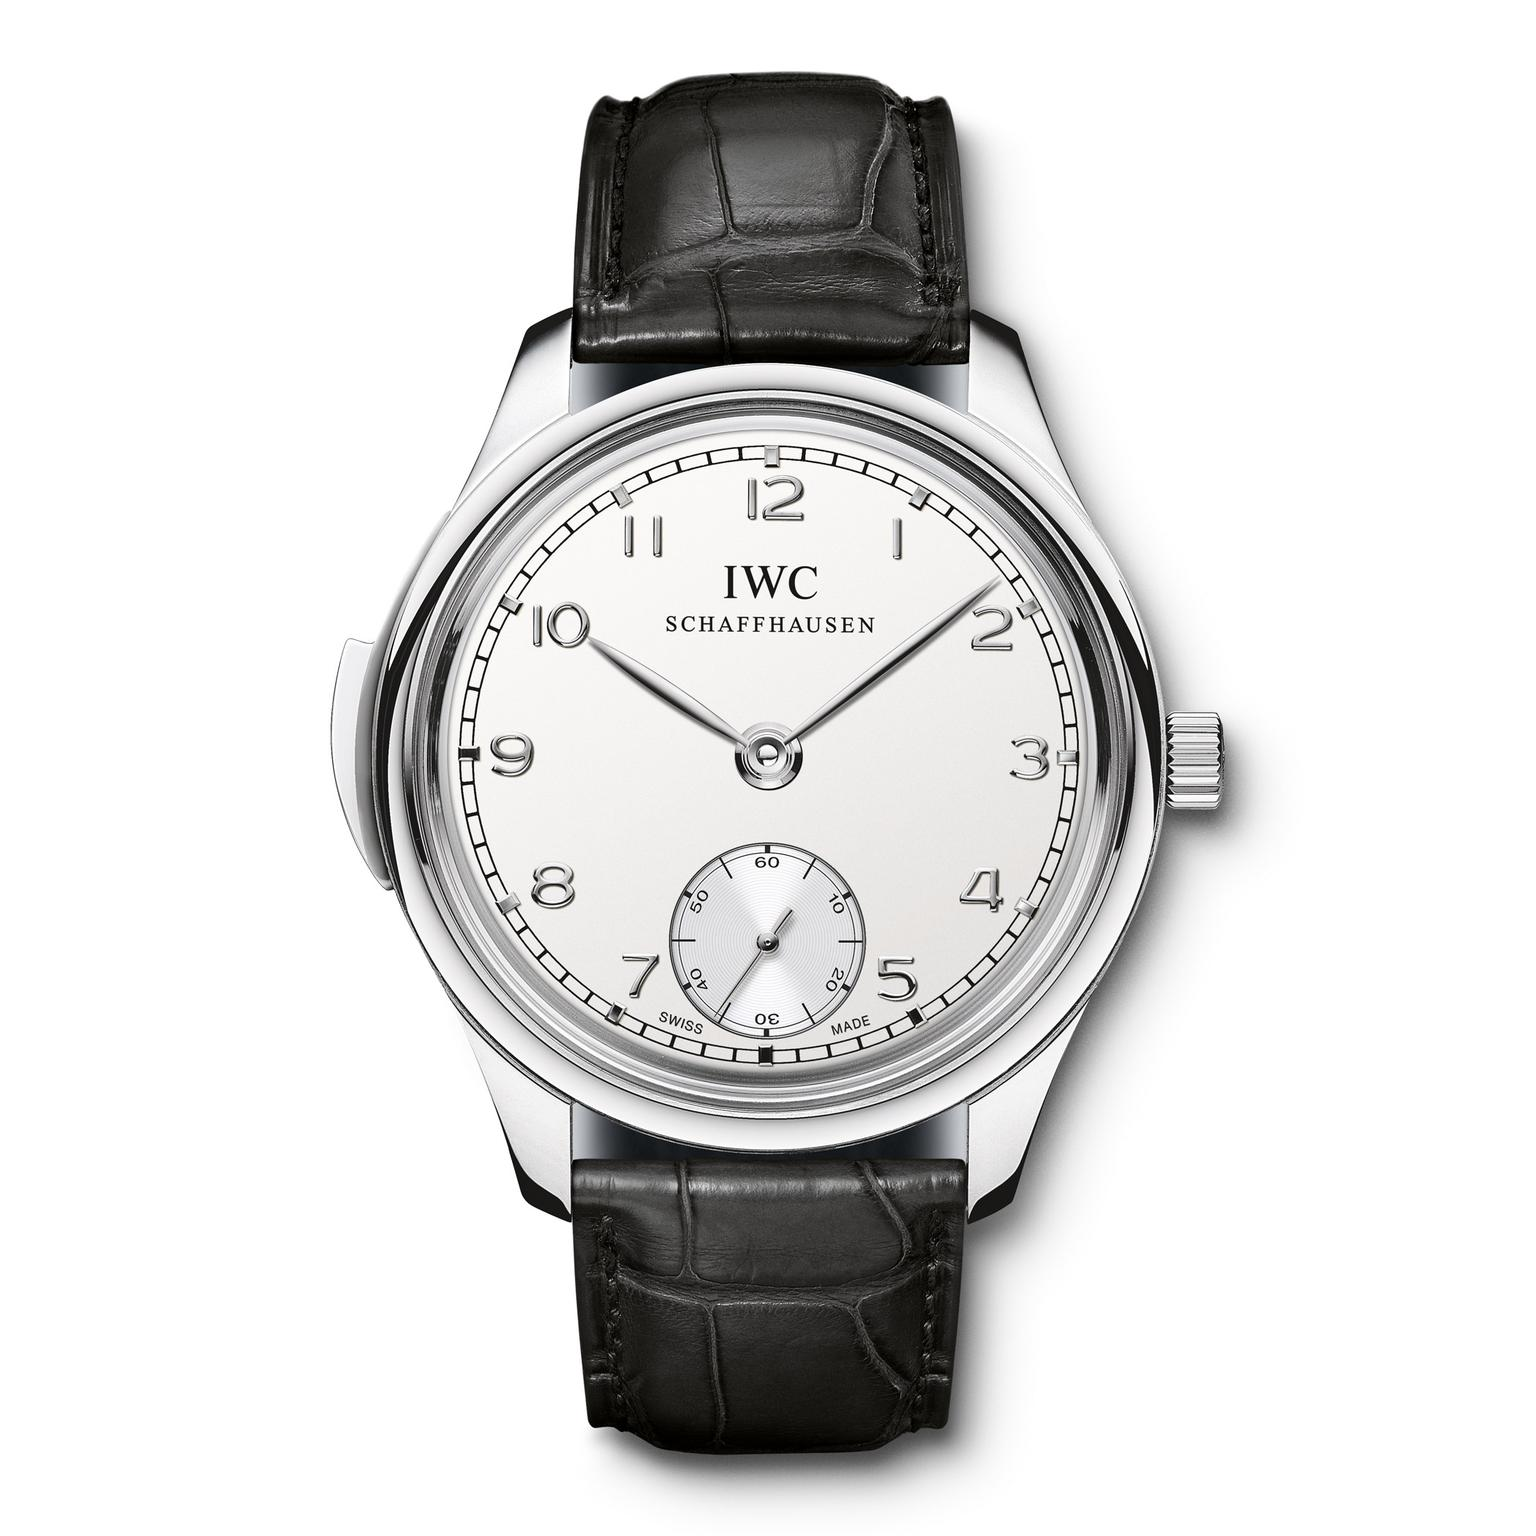 IWC Portugieser Minute Repeater in platinum Zoom